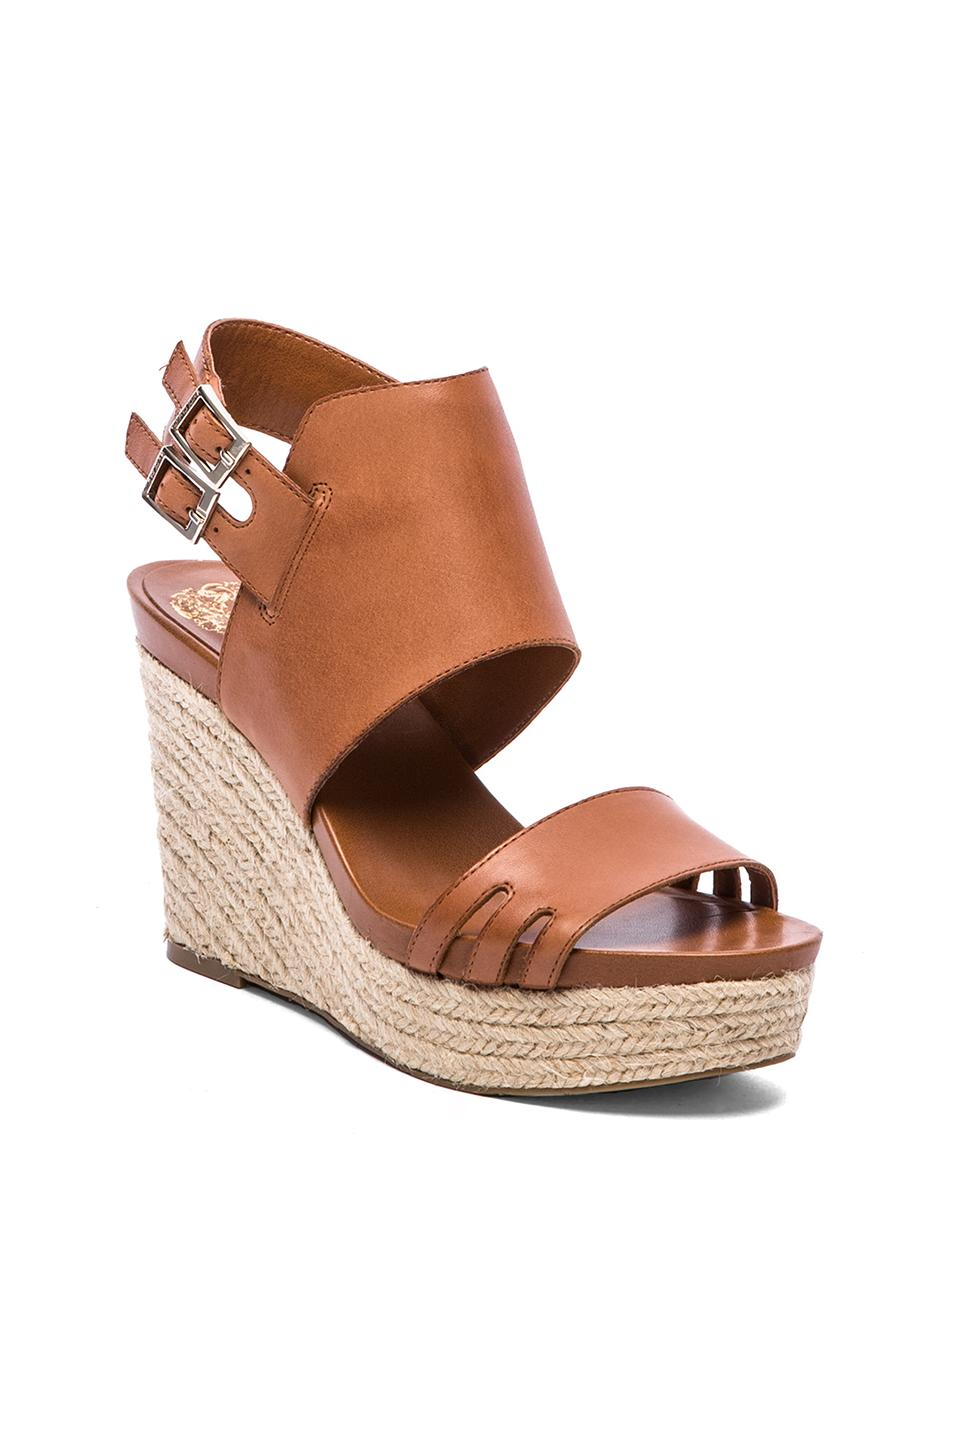 Vince Camuto Temperton Wedge in Fudge/Natural from REVOLVEclothing.com